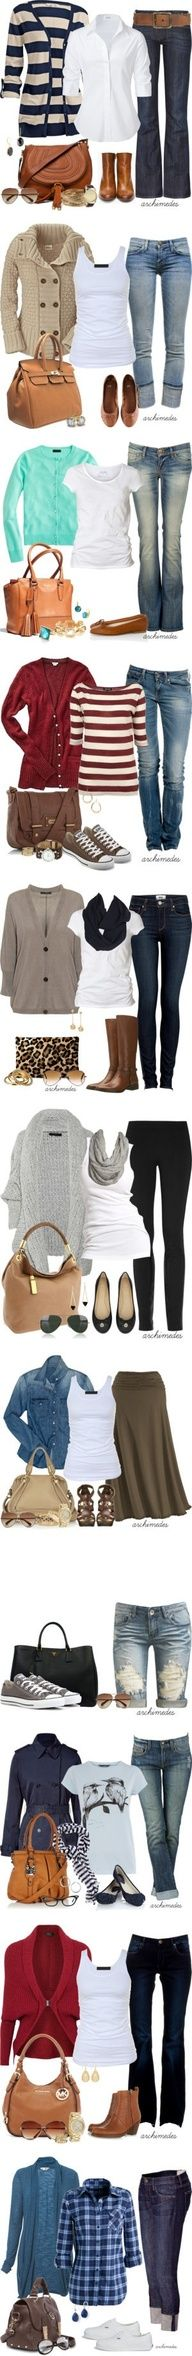 Cardigans can make any outfit!!! Love this from Chic Fashion Pins